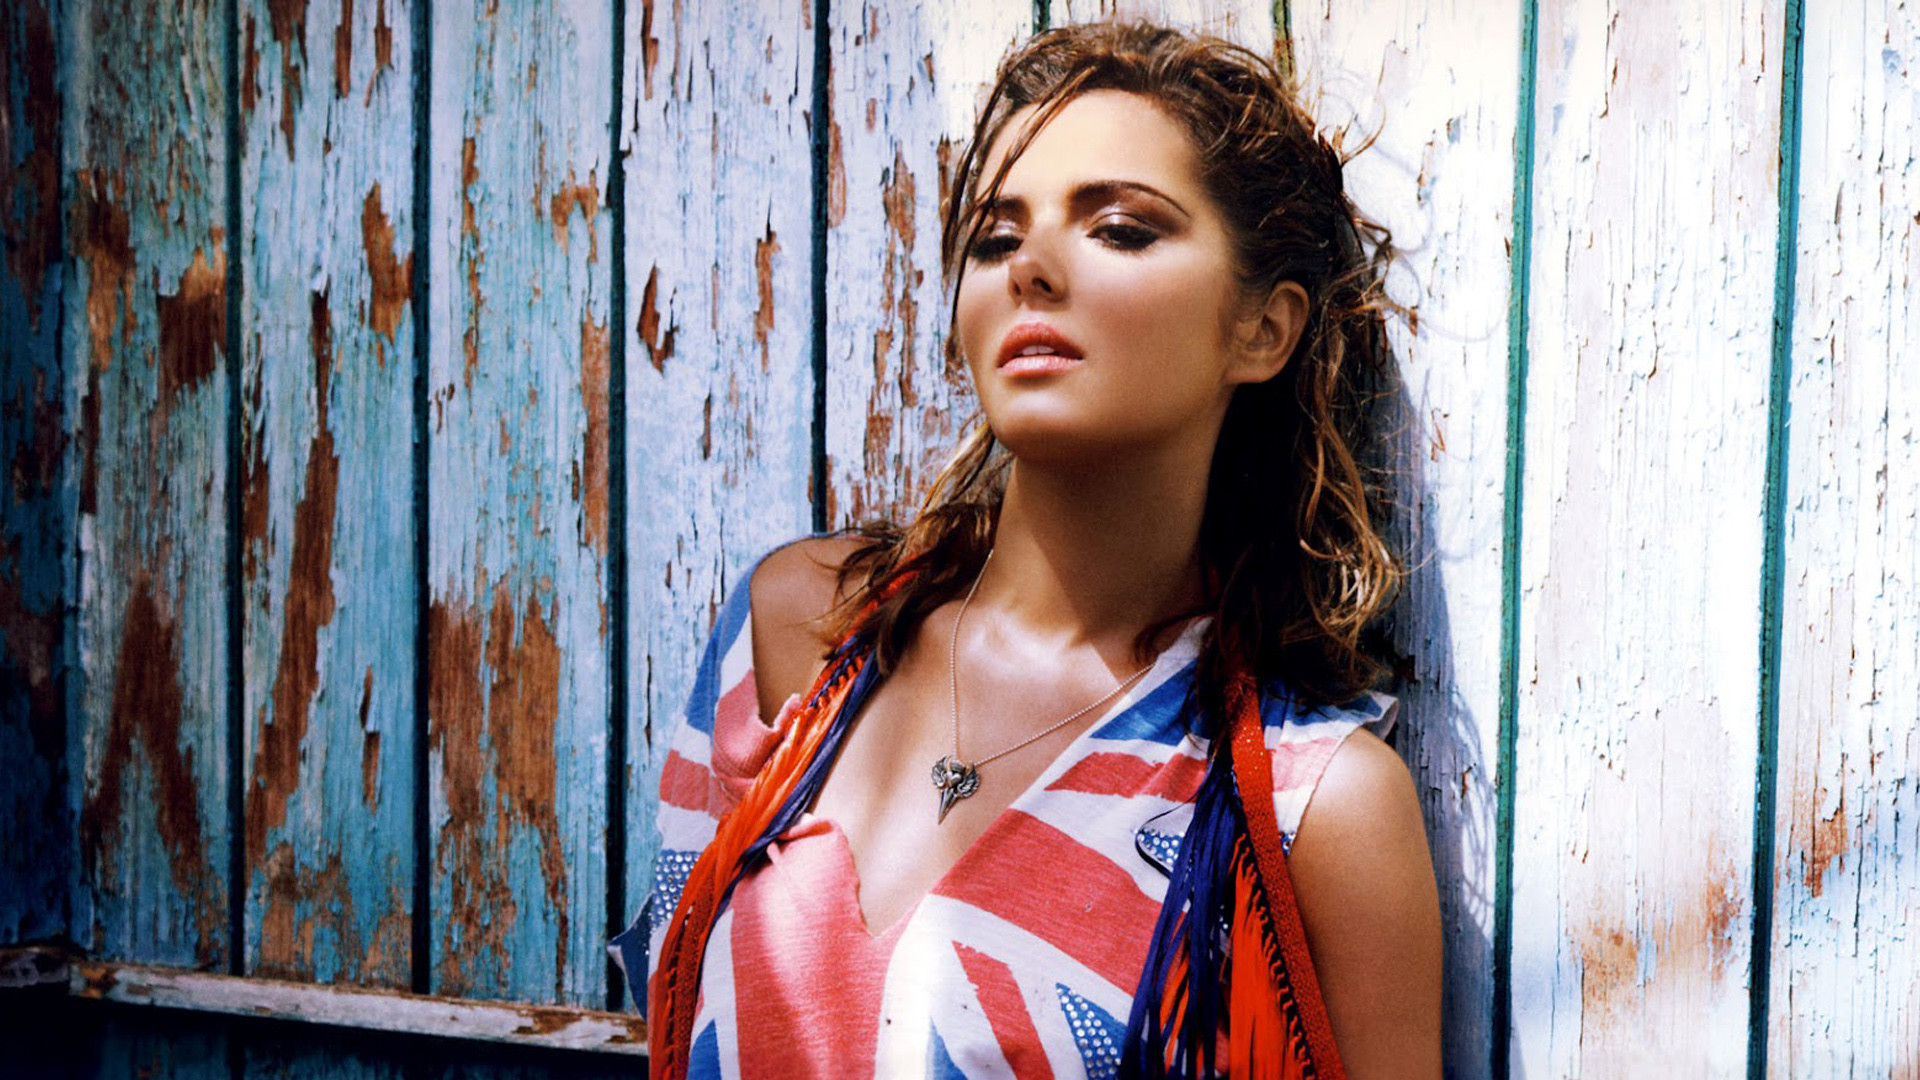 Cheryl cole wallpaper 2018 59 images for Cheryl cole tattoo removal